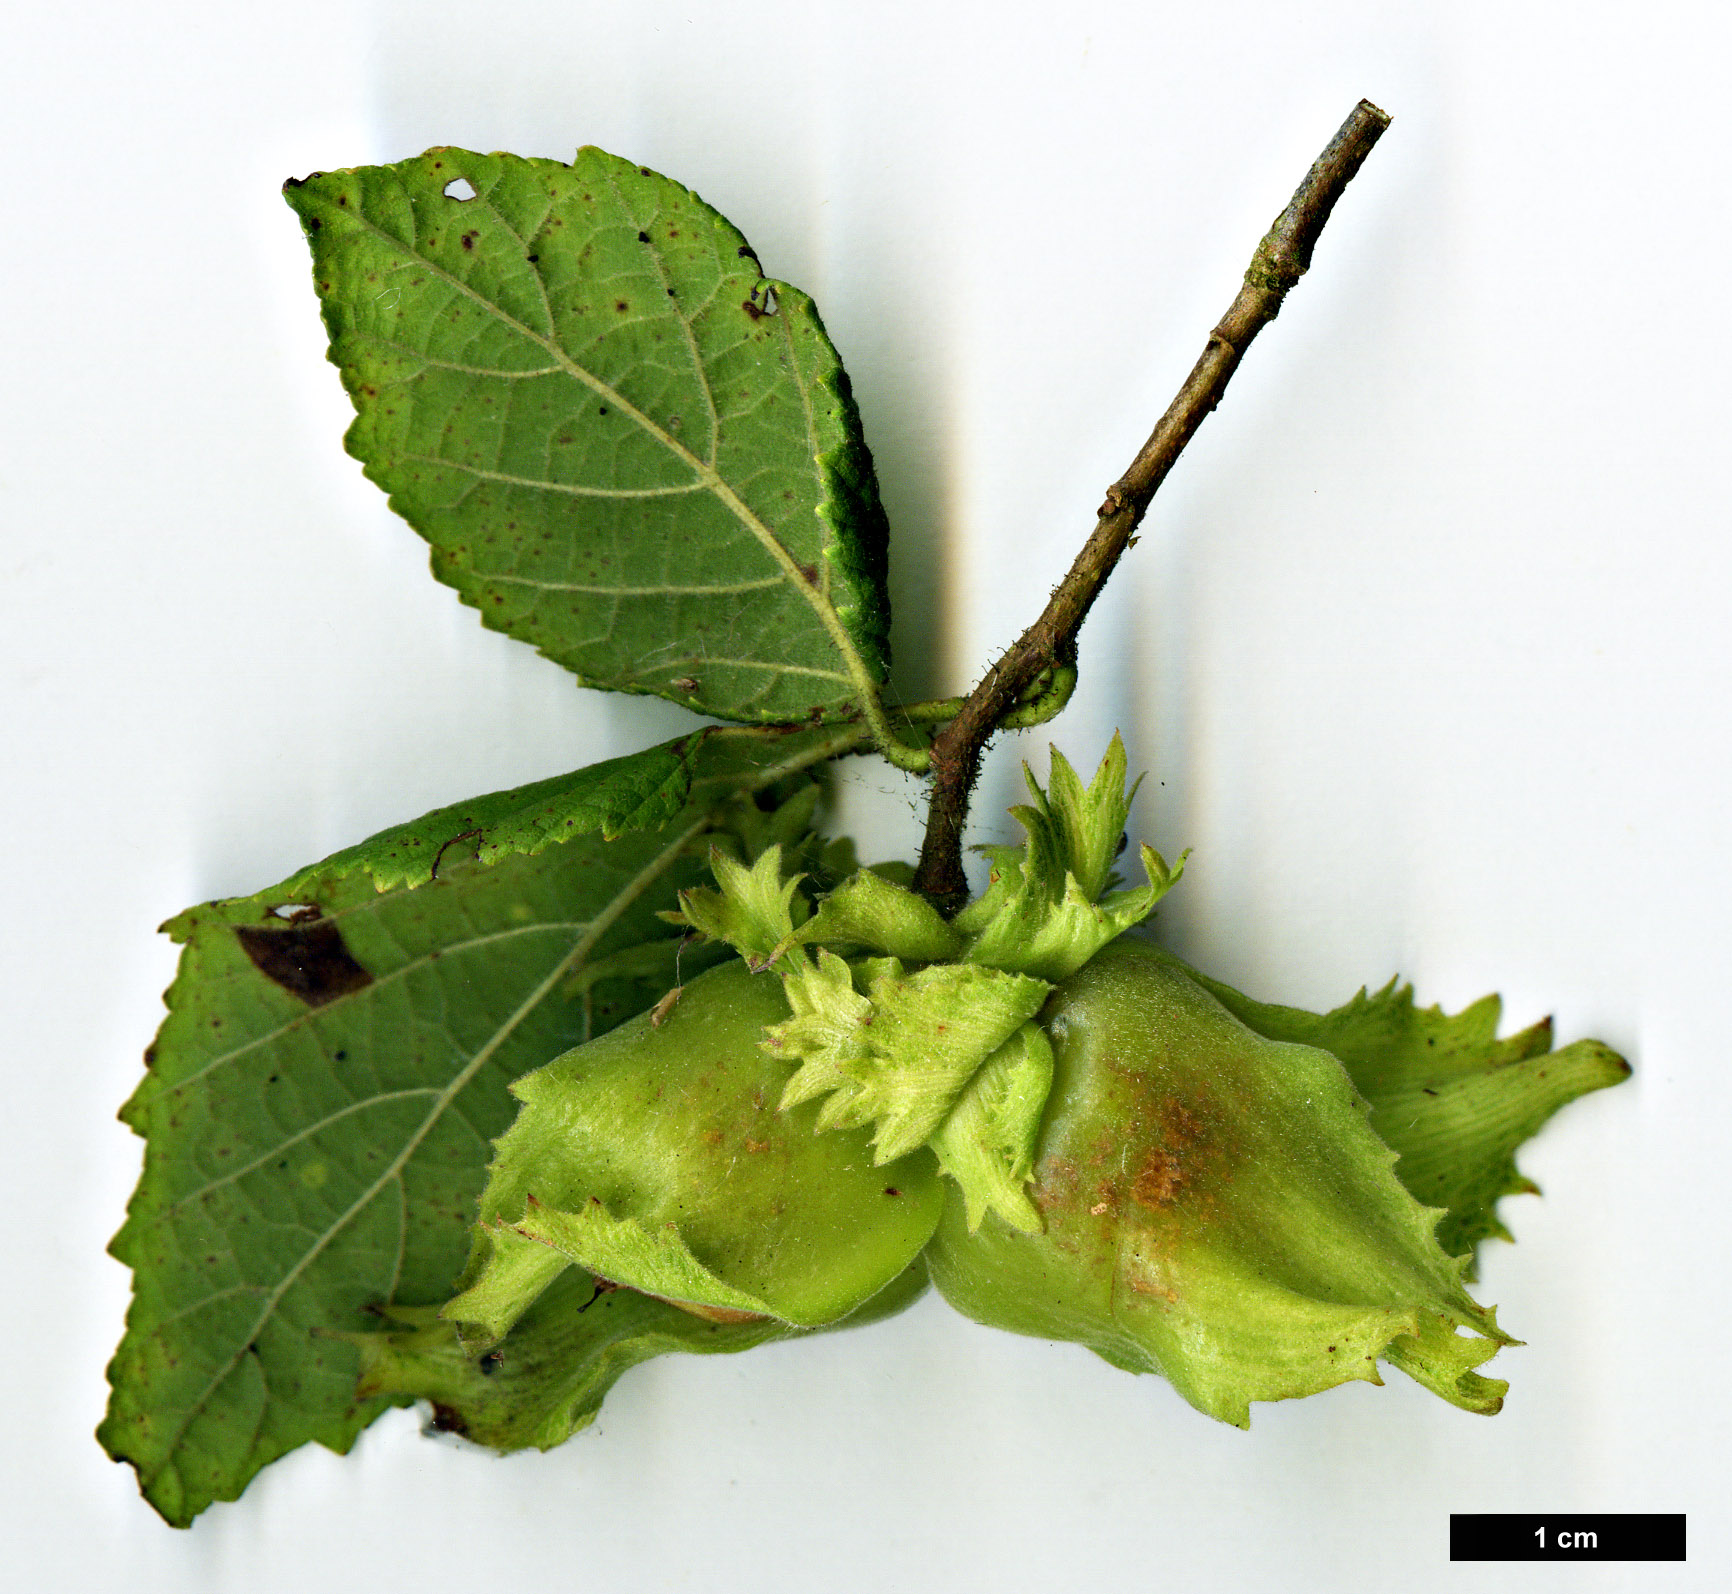 High resolution image: Family: Betulaceae - Genus: Corylus - Taxon: americana